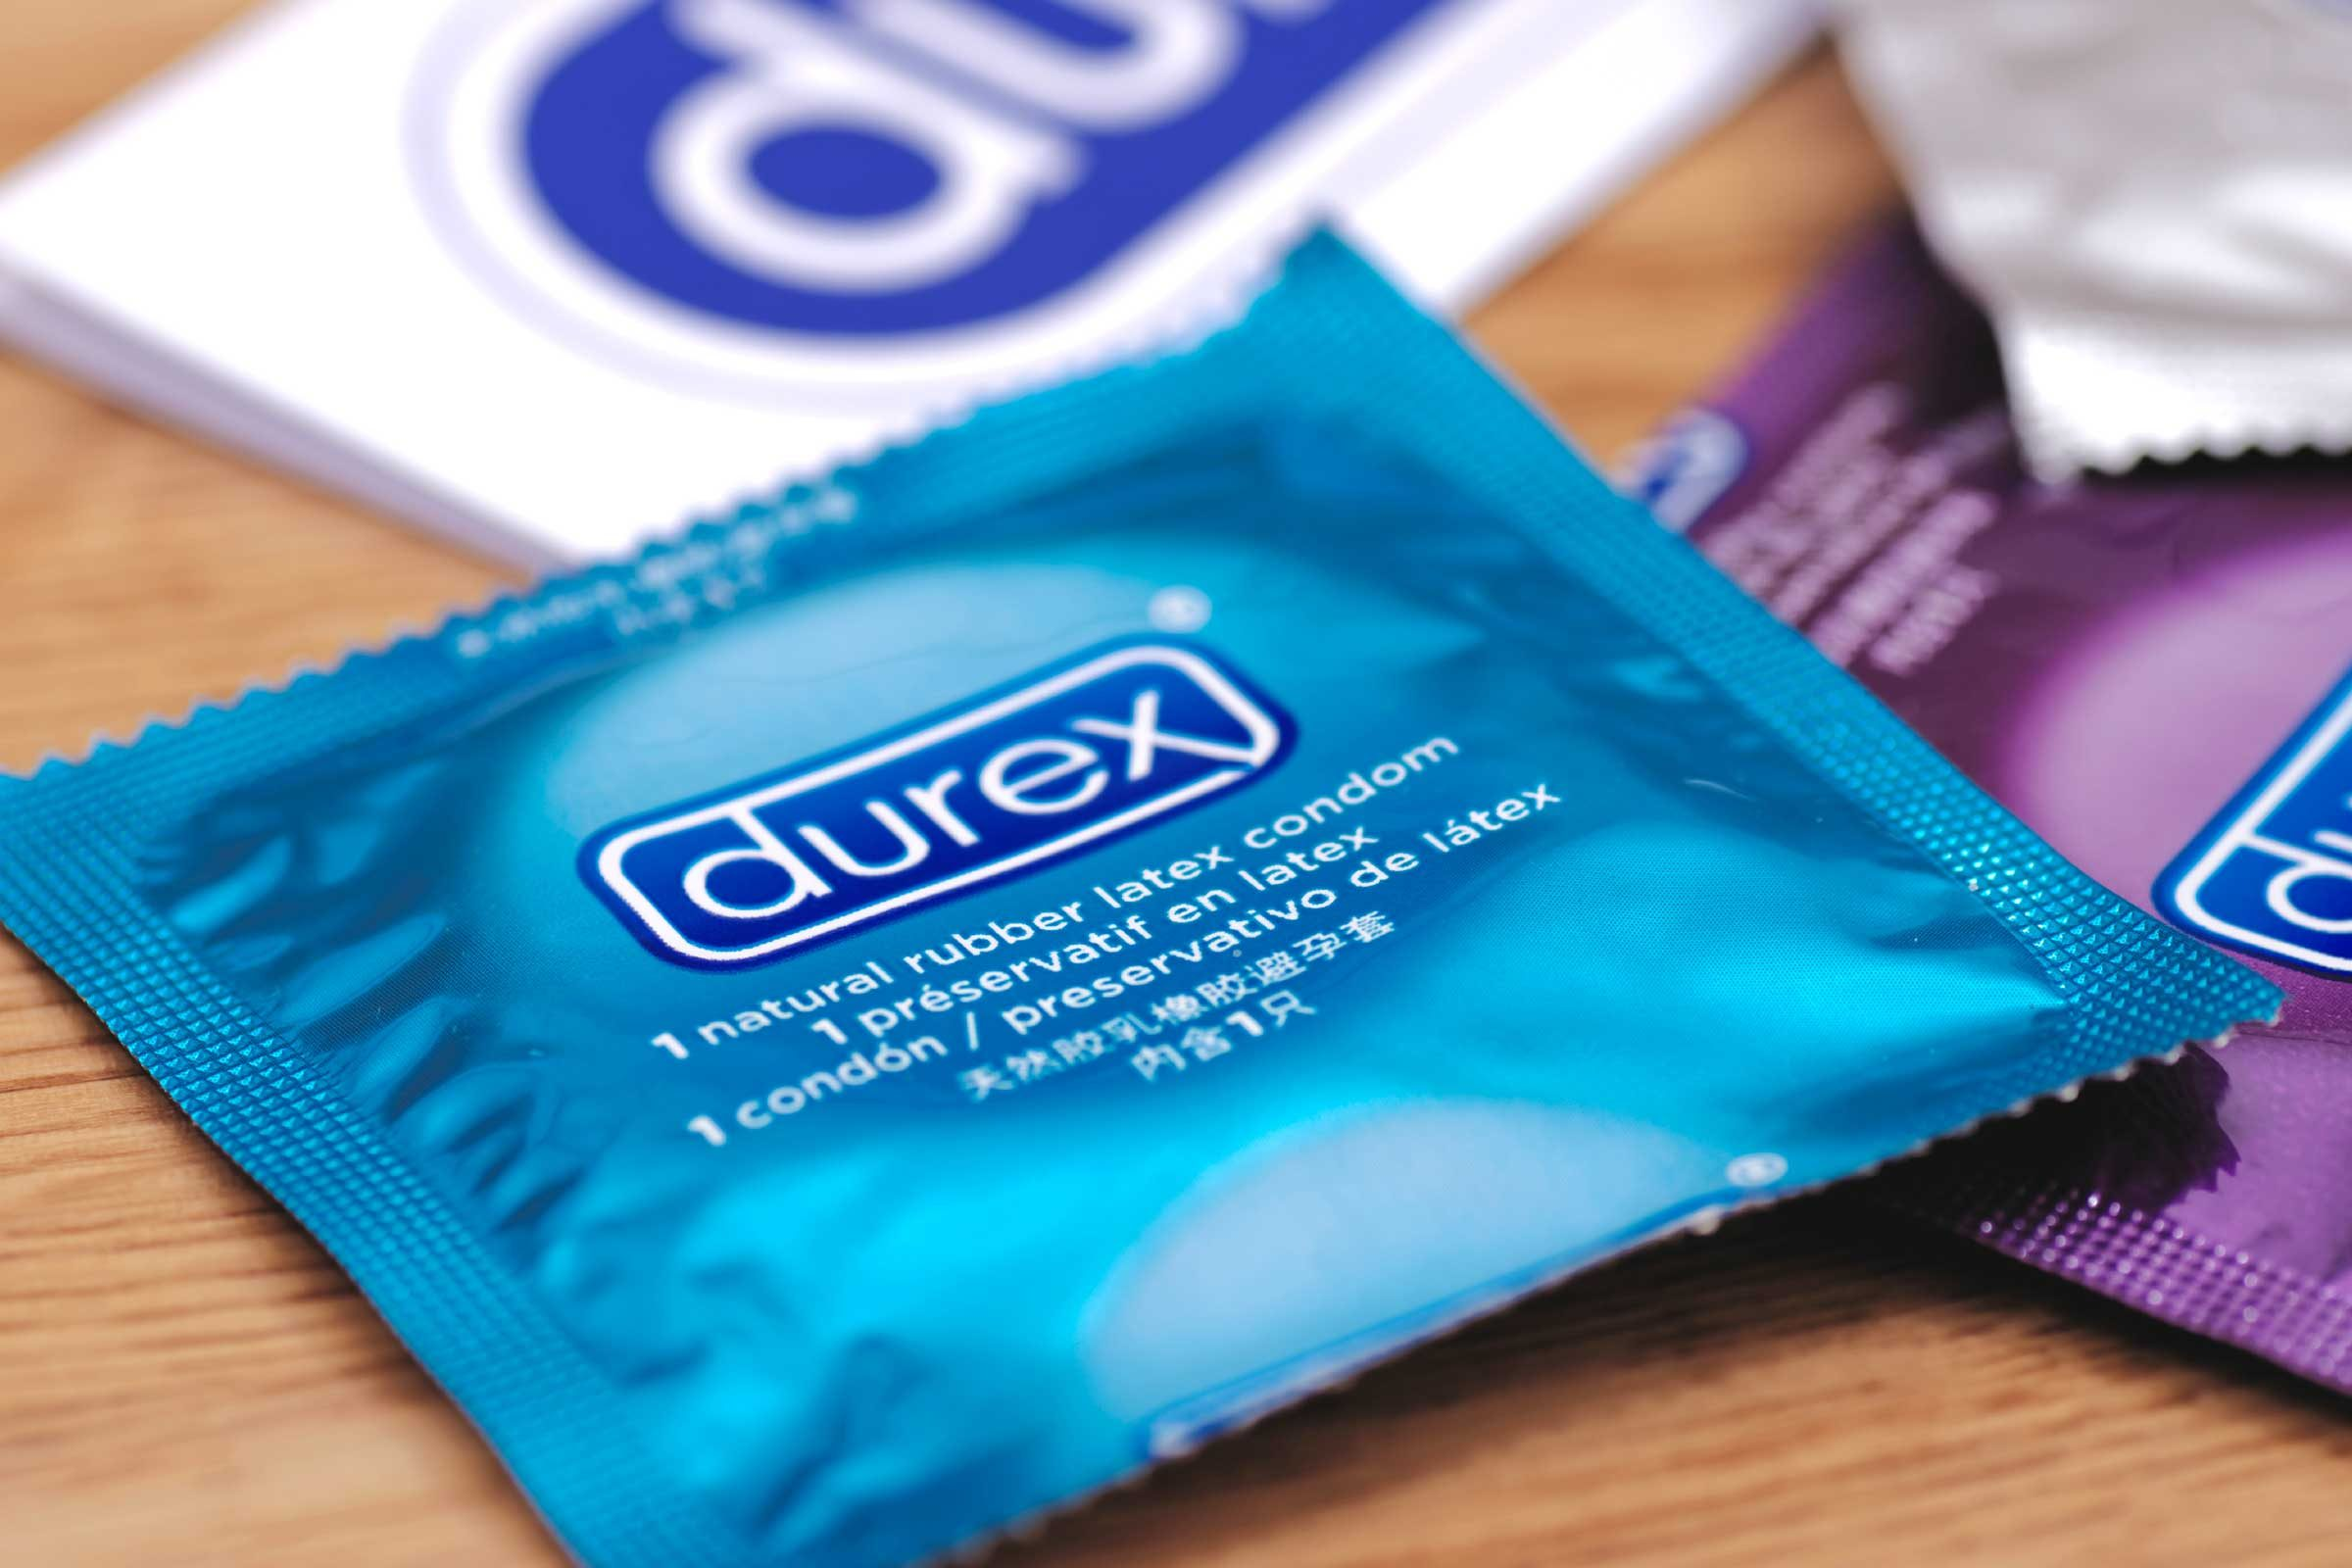 health myths gynecologists hear | condoms in wrappers